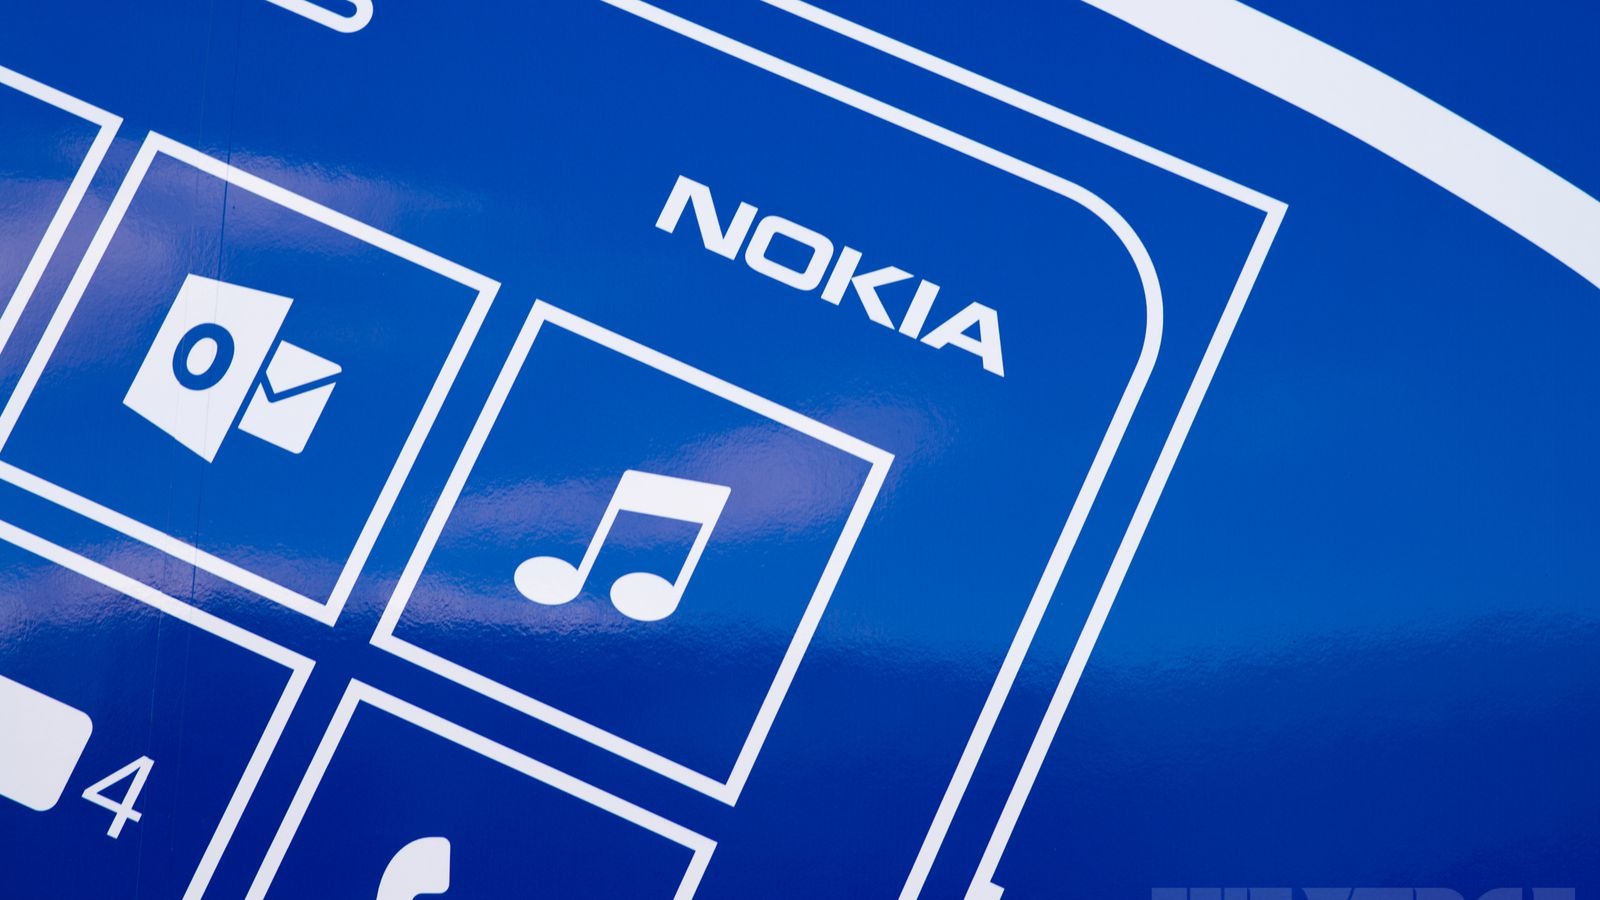 Nokia teases new Android phone for February 26th